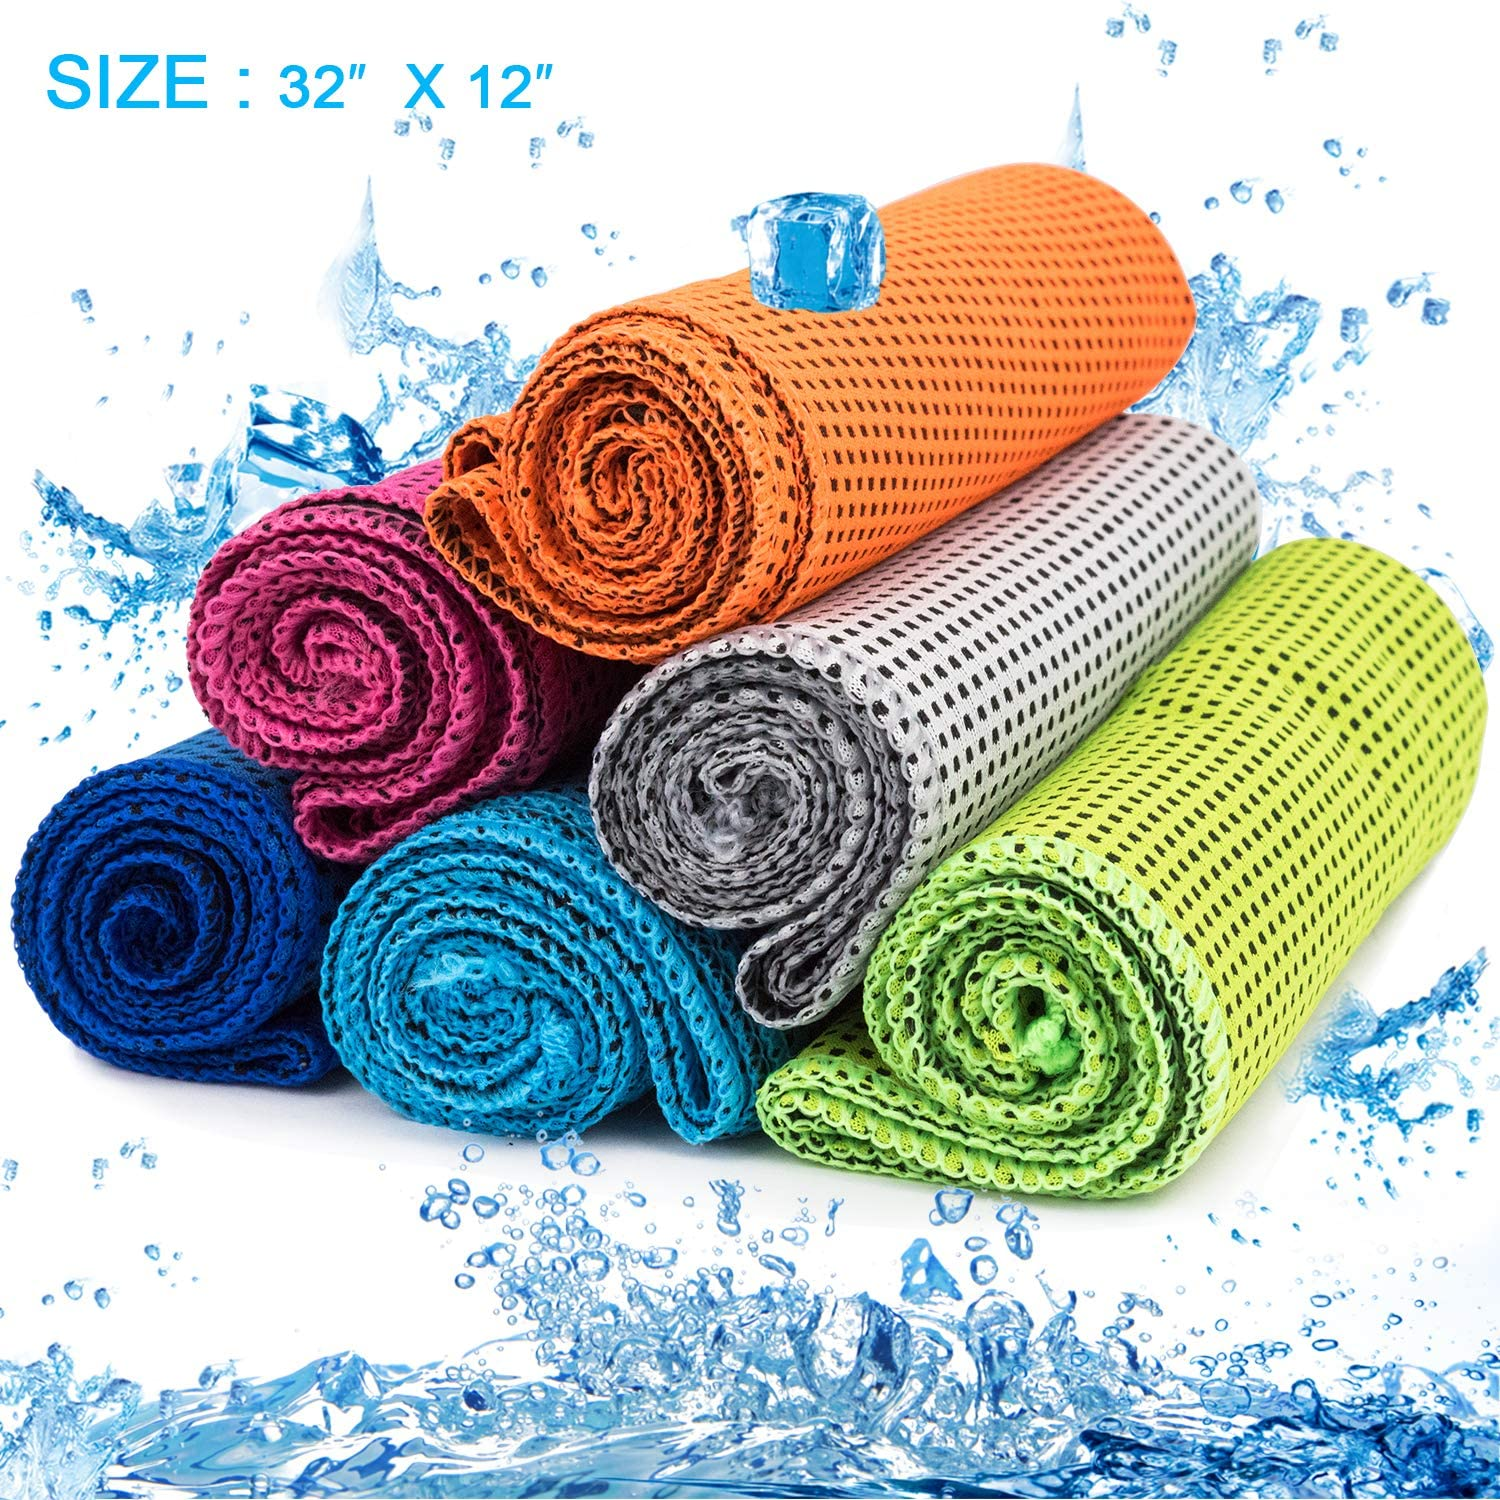 Camping MENOLY 6 Pack Cooling Towel Running Ice Towel Microfiber Towel Soft Breathable Chilly Towel for Sports Gym Workout /& More Activities Yoga Fitness